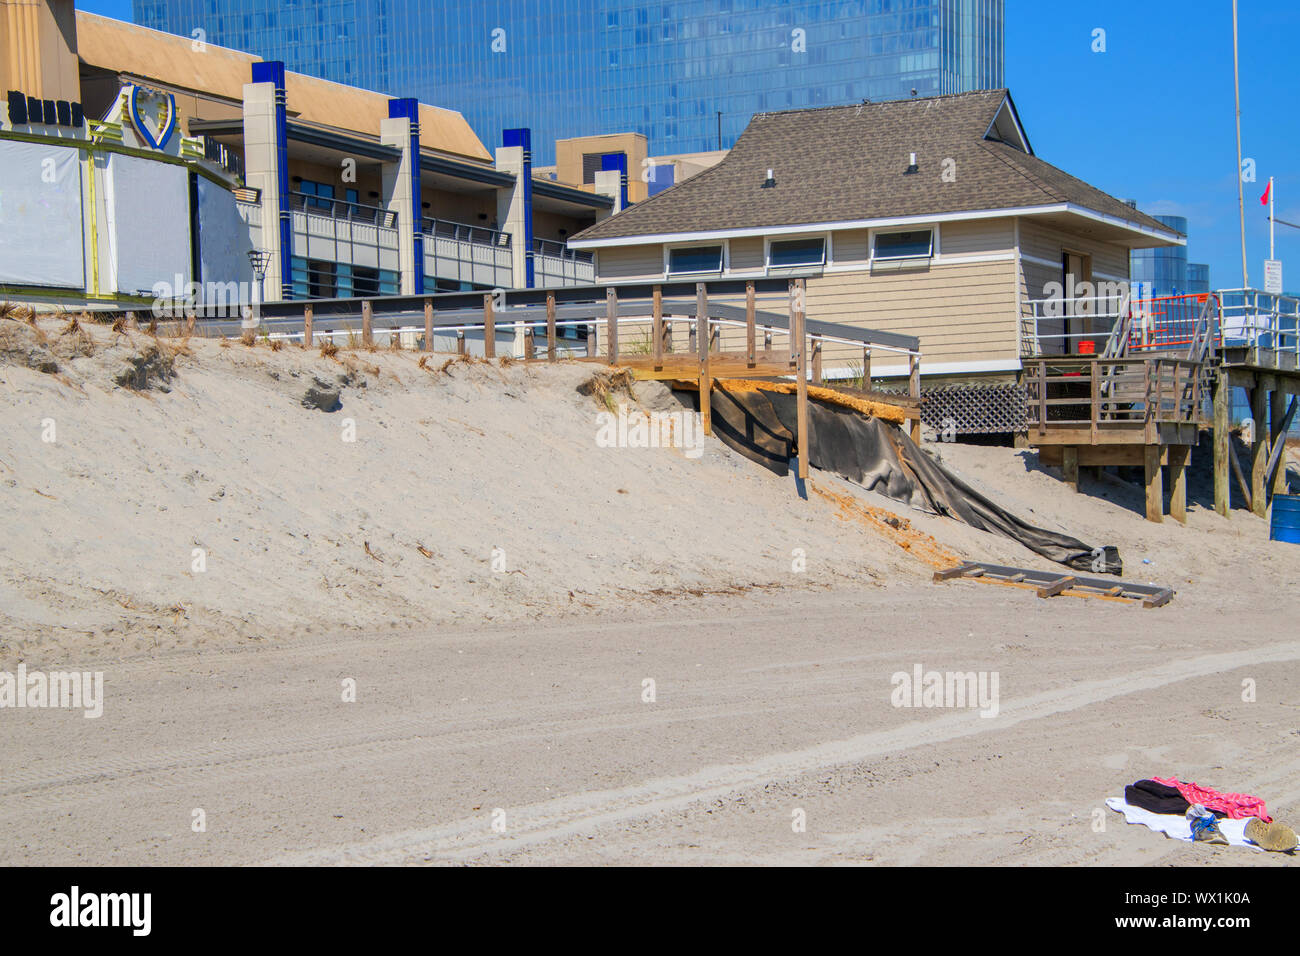 Erosion of the sand of the beach with destruction of a asphalt path near a raised lifeguard station after a hurricane and storm Stock Photo